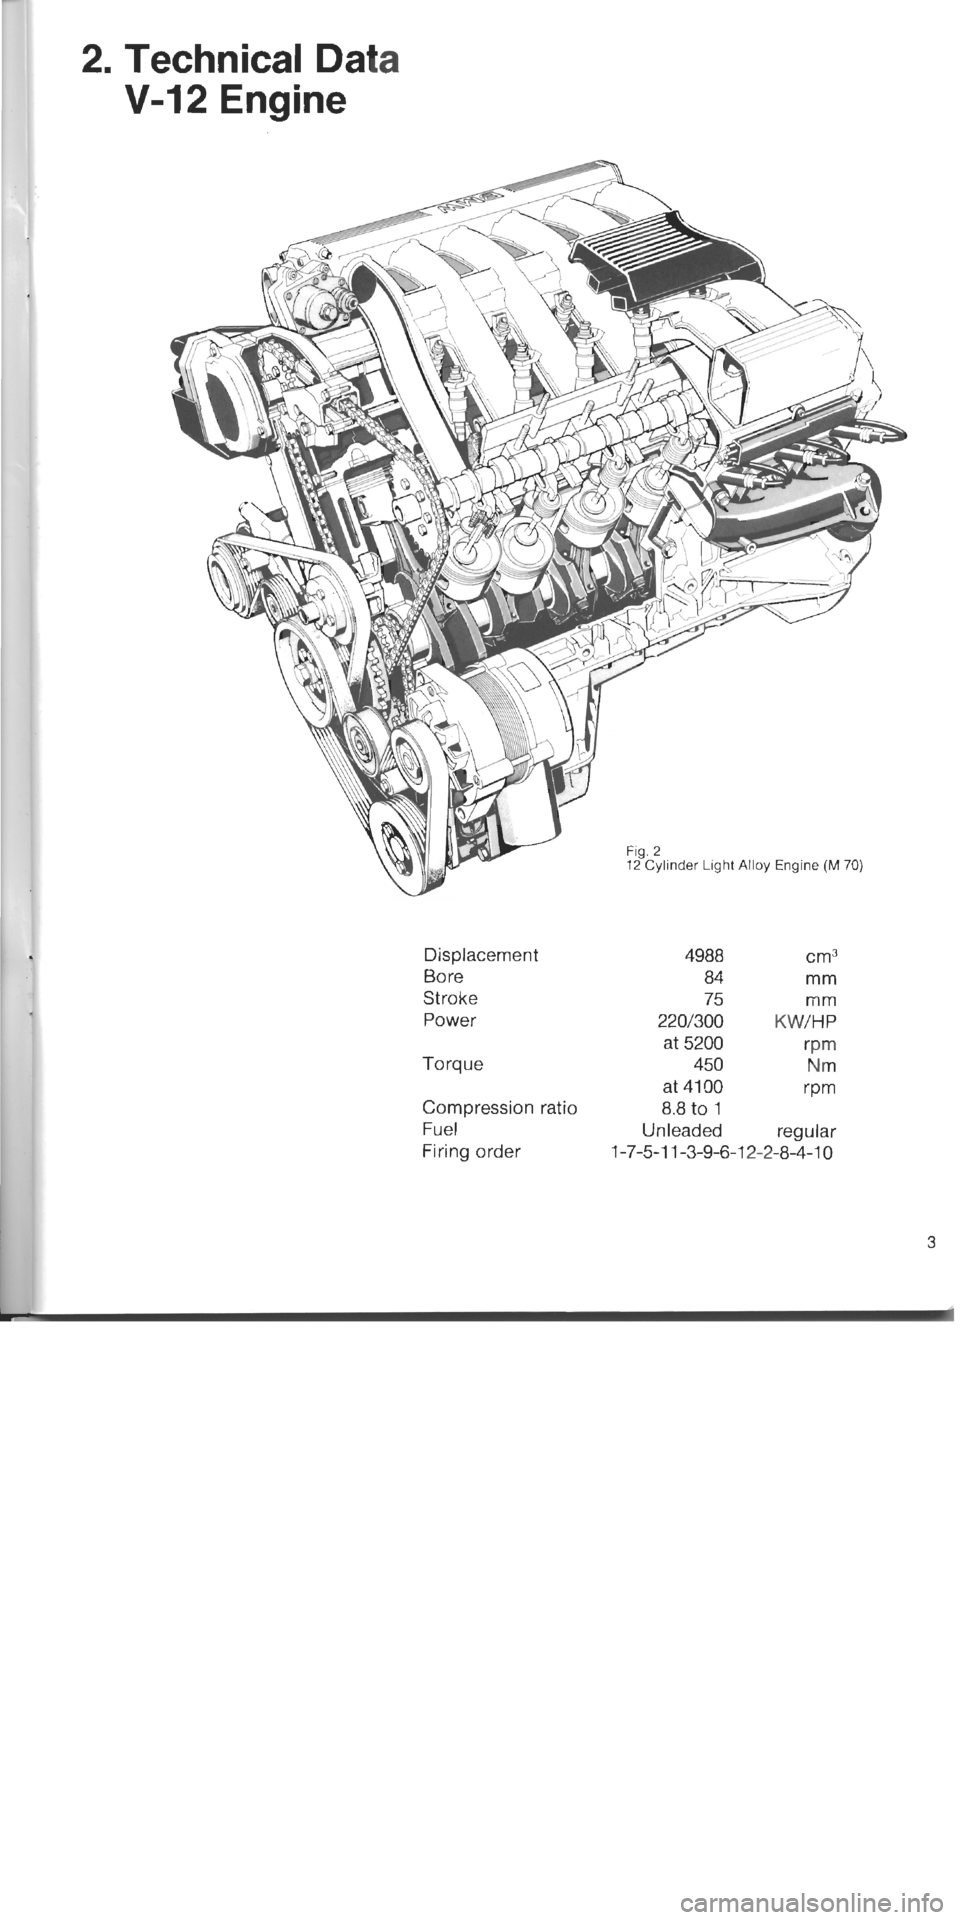 BMW 850i 1994 E31 M70 Engine Workshop Manual